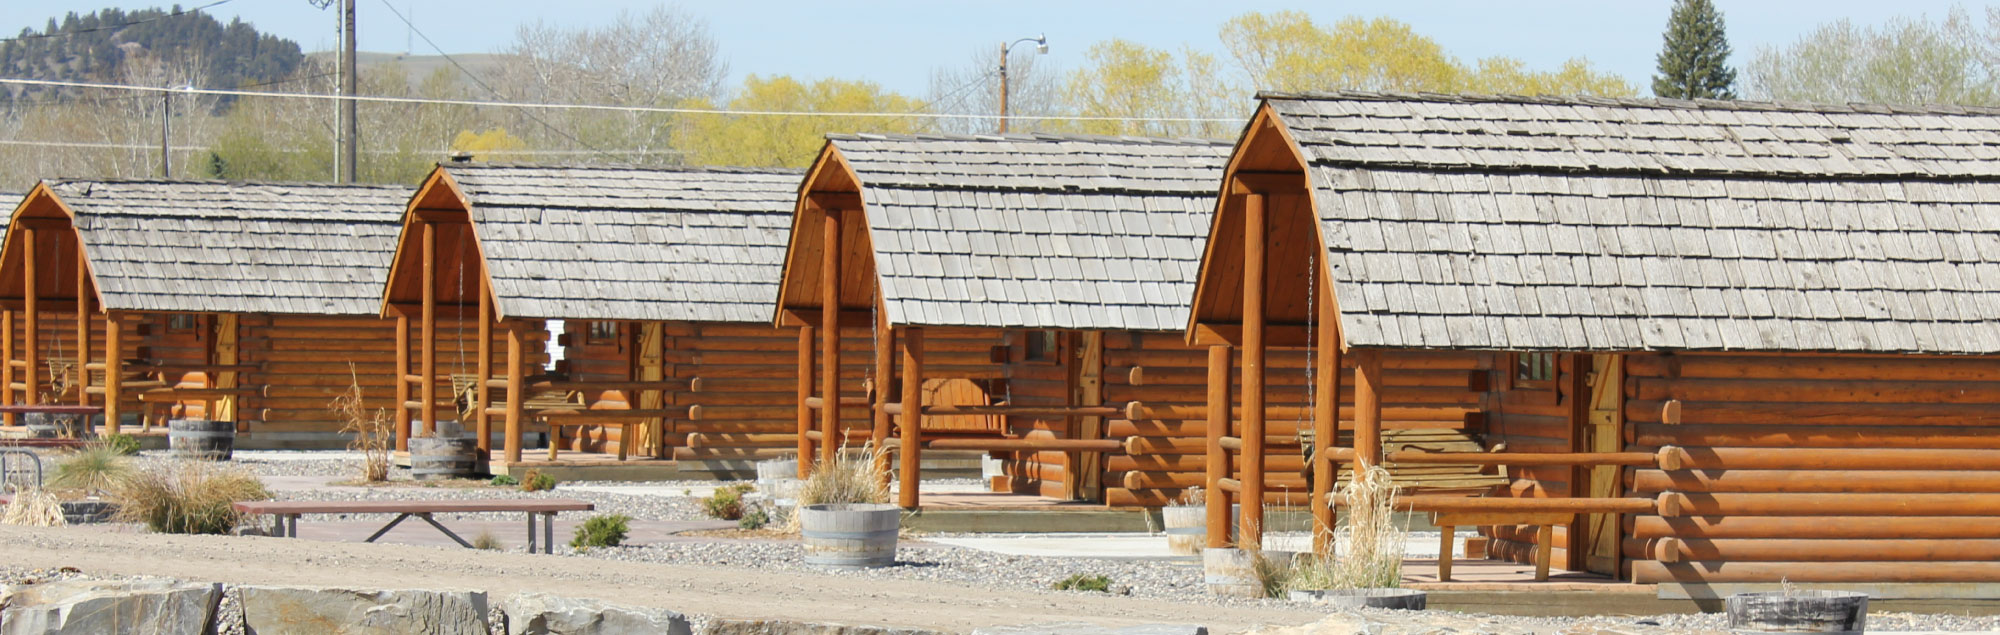 hotel springs now lolo booking reserve gallery resort com us of image this mt village cabins hot property